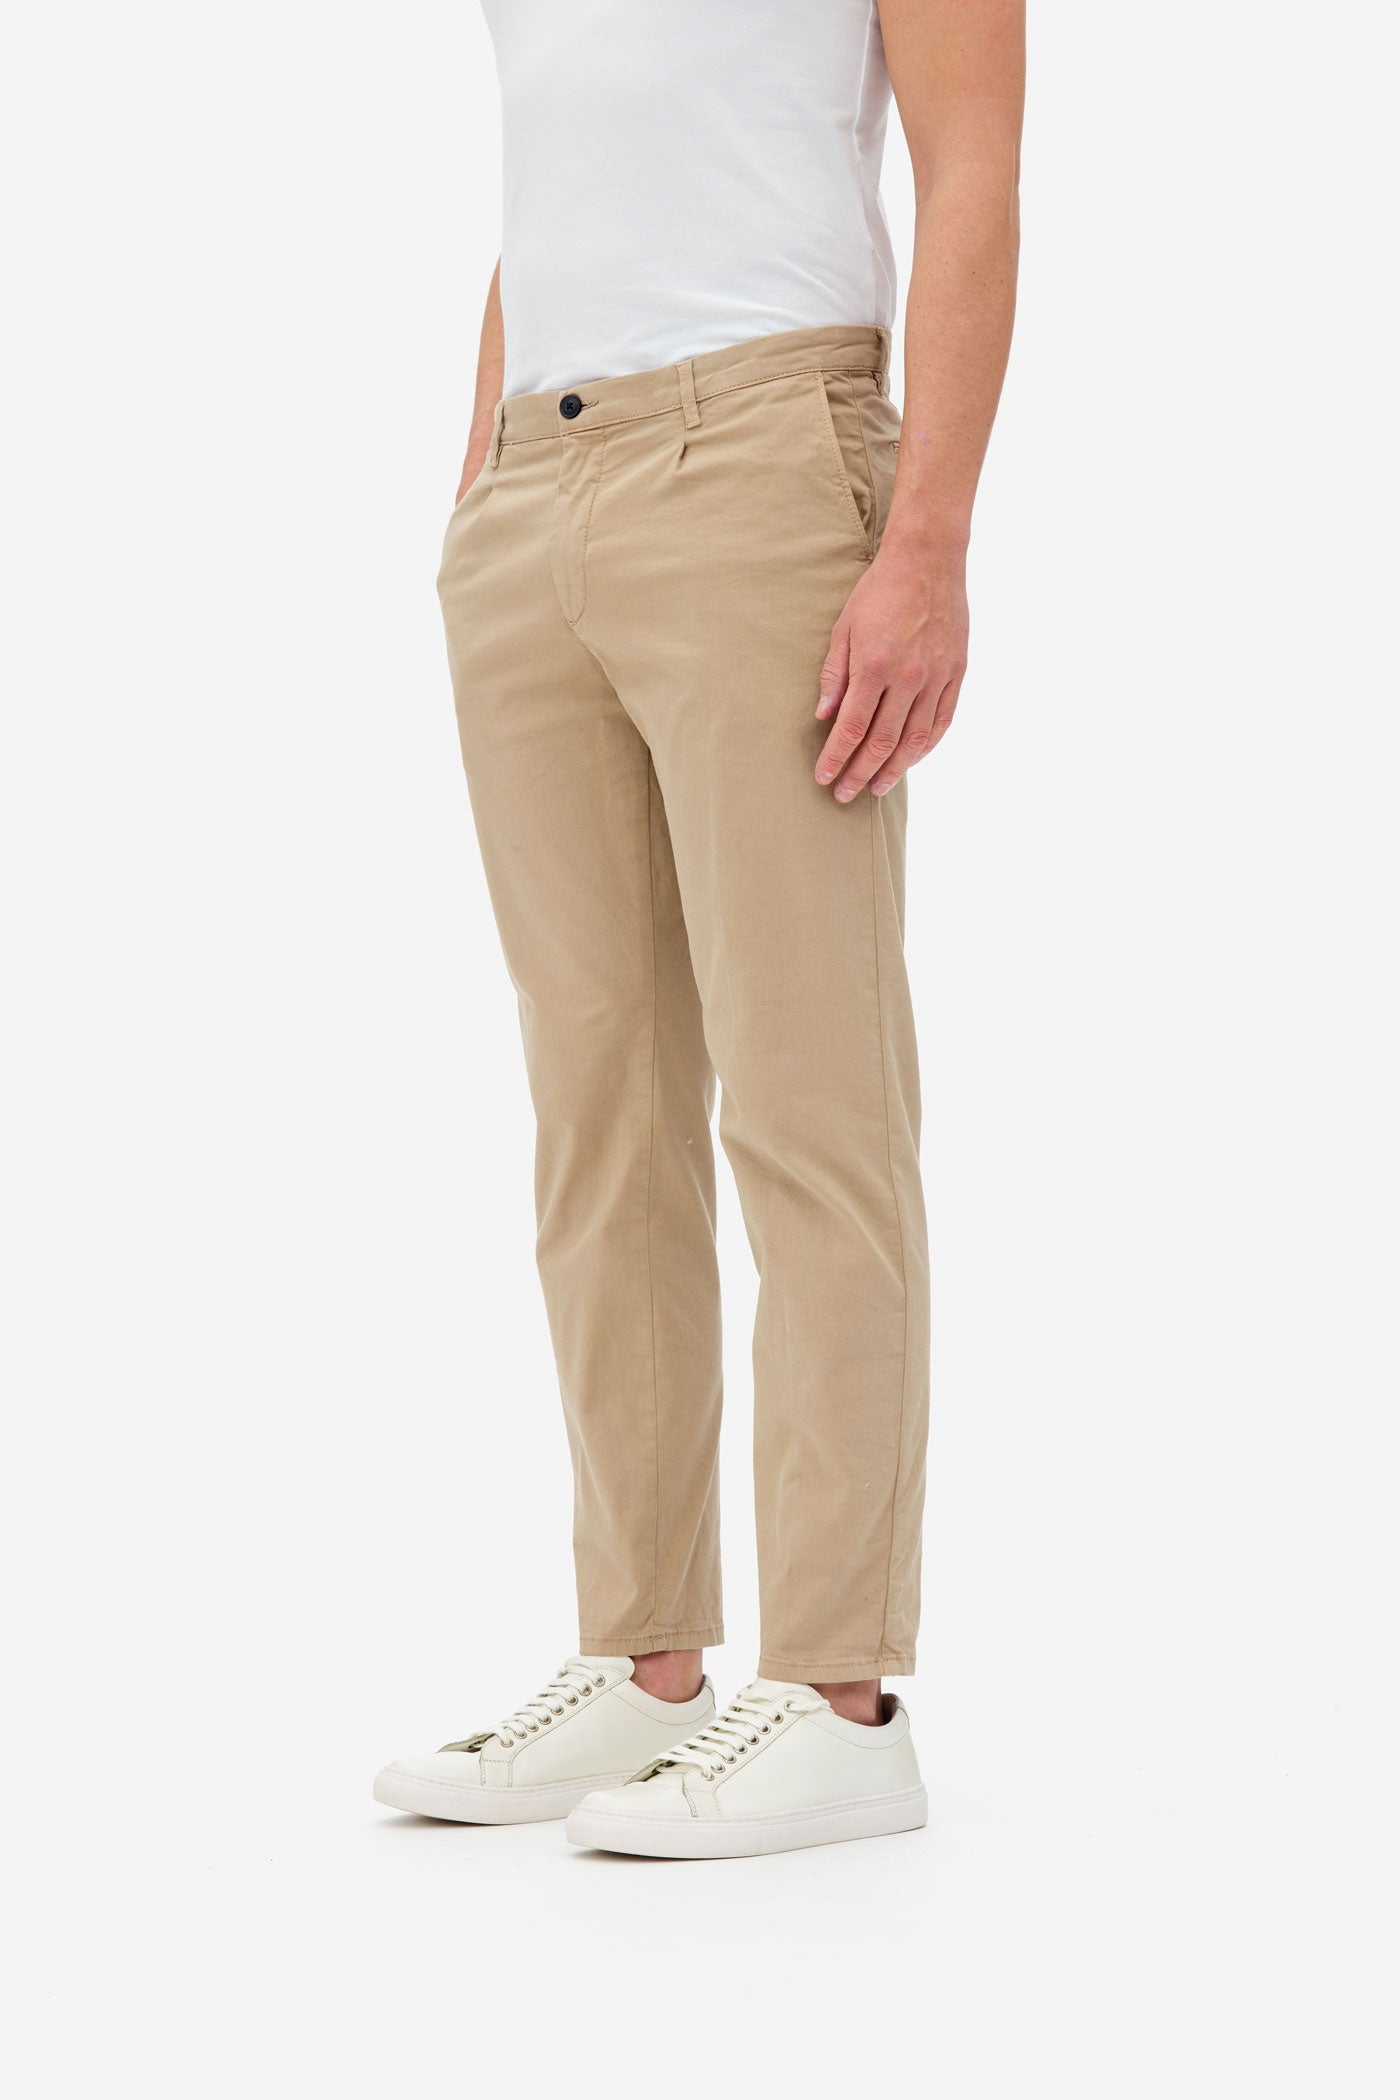 one pleat pants white pepper